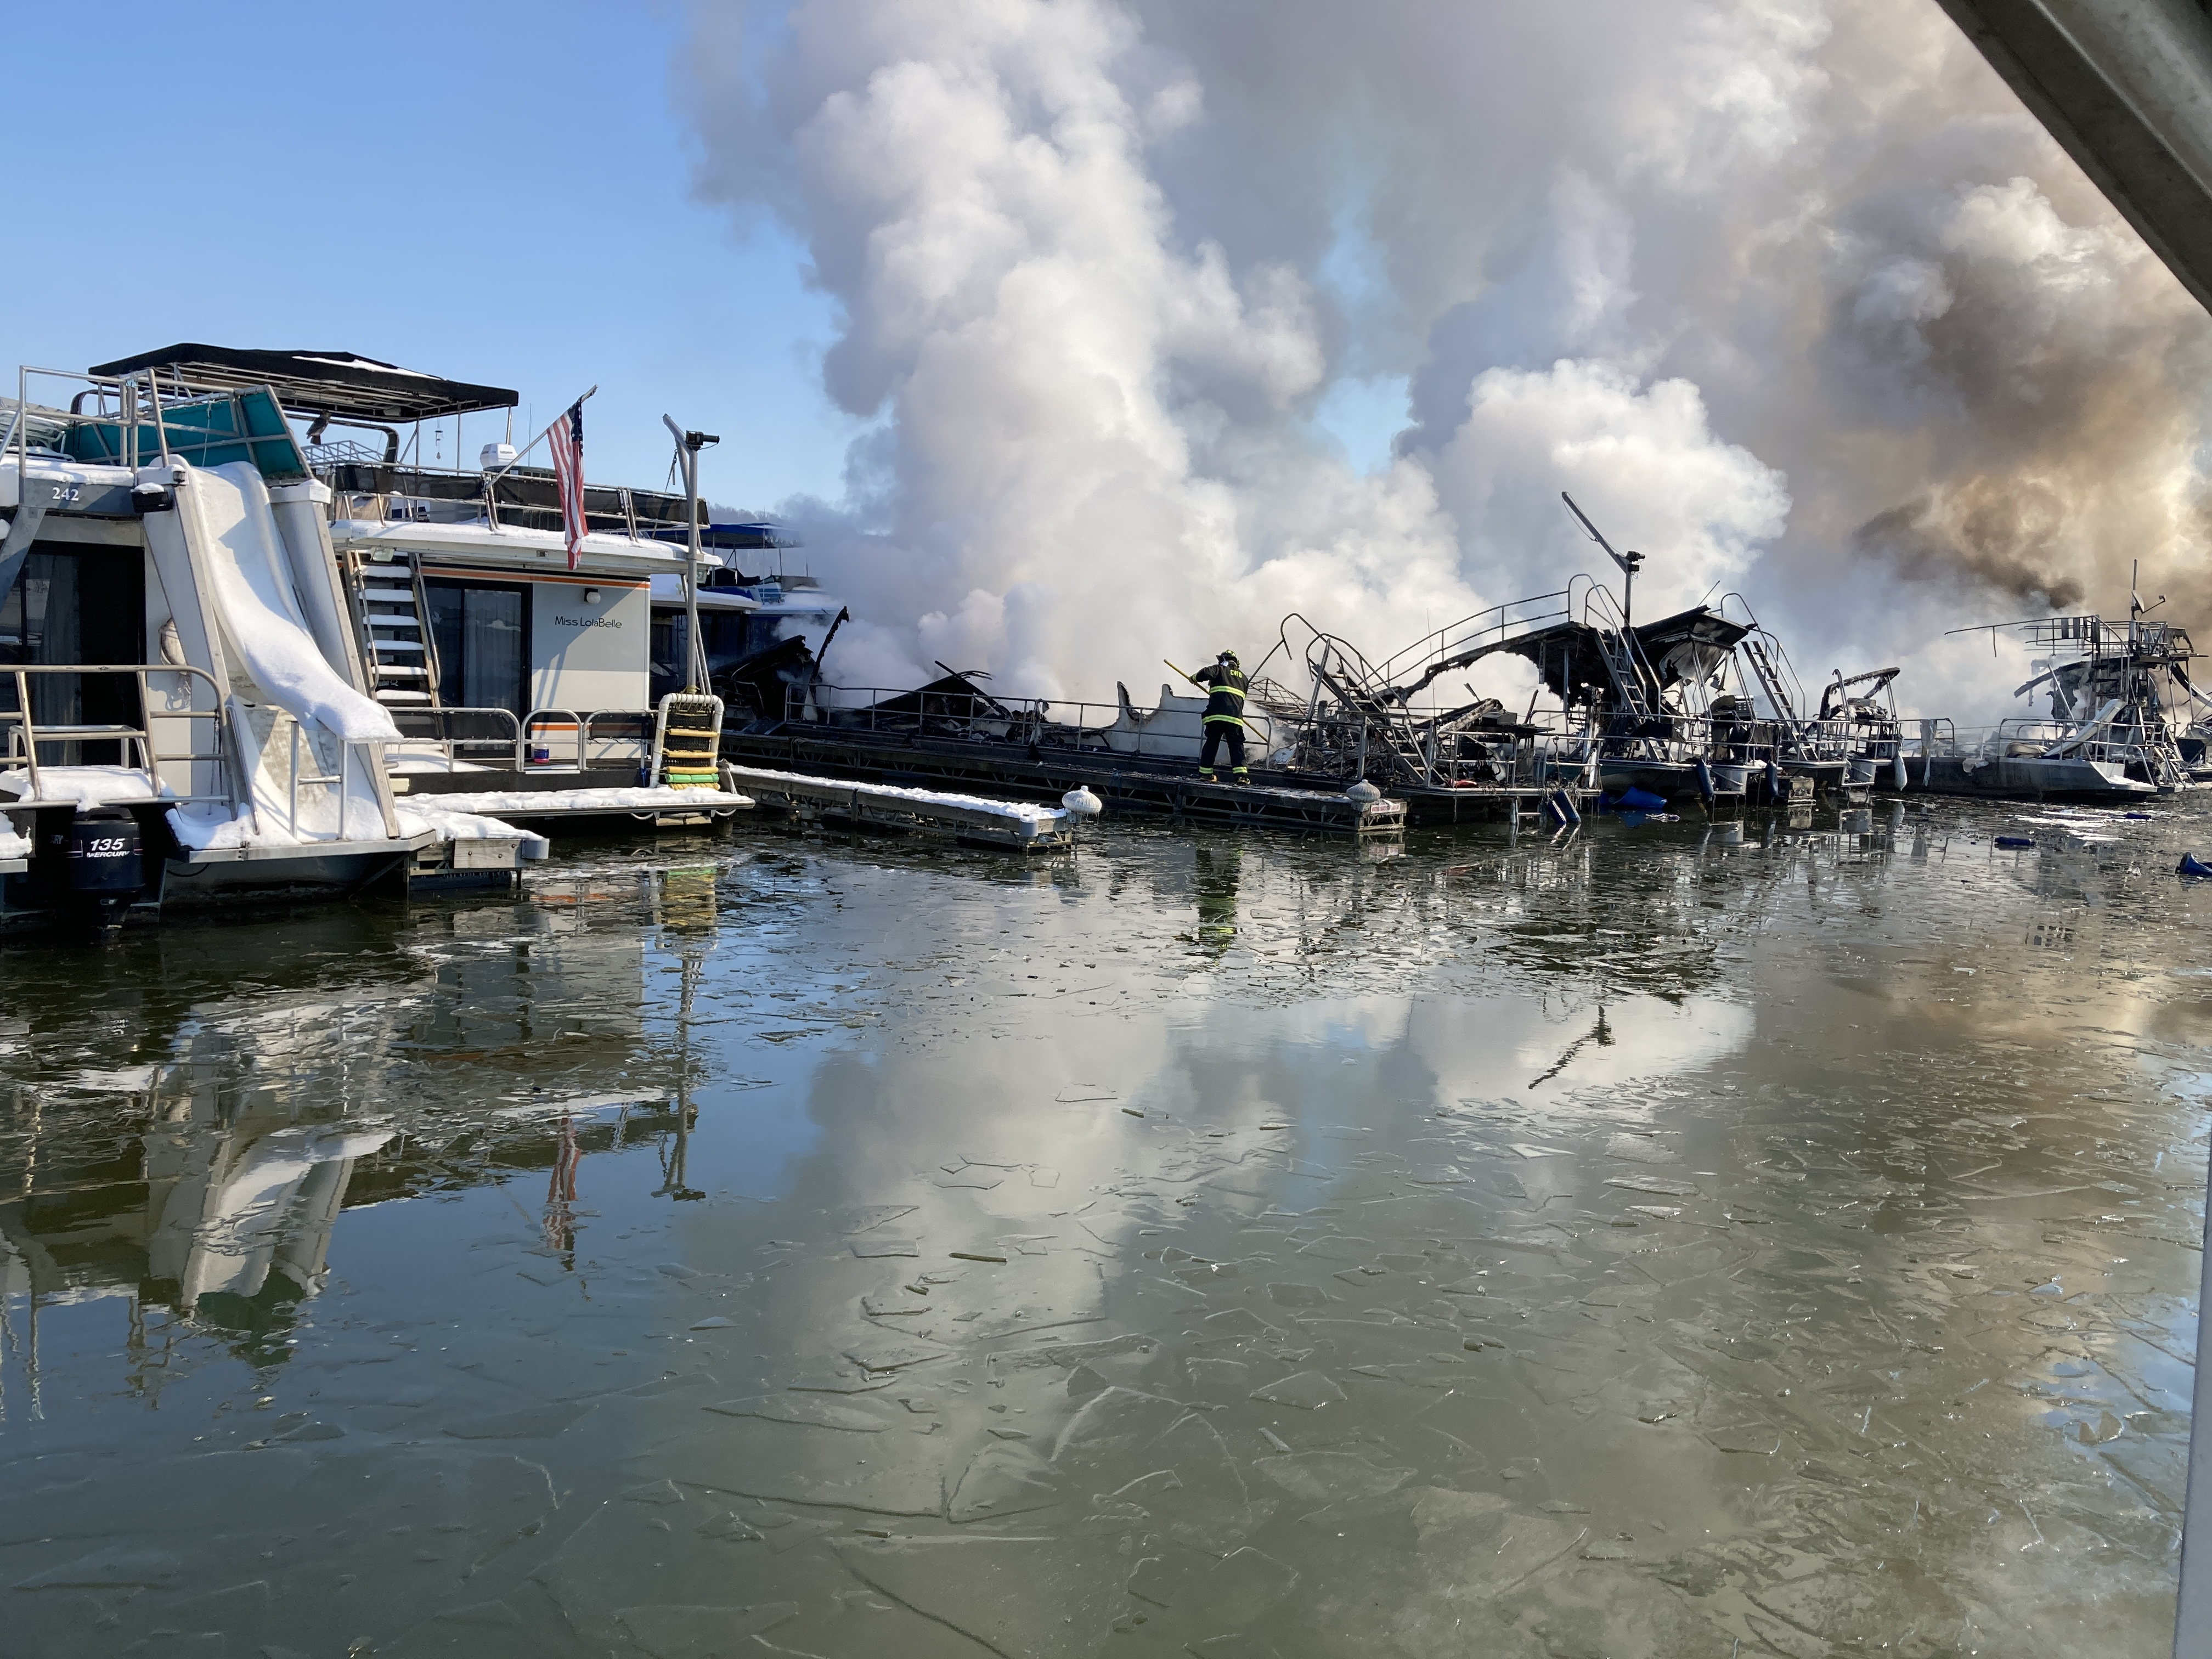 We're Learning More About Friday's Marina Fire, We Still Don't Know the Cause